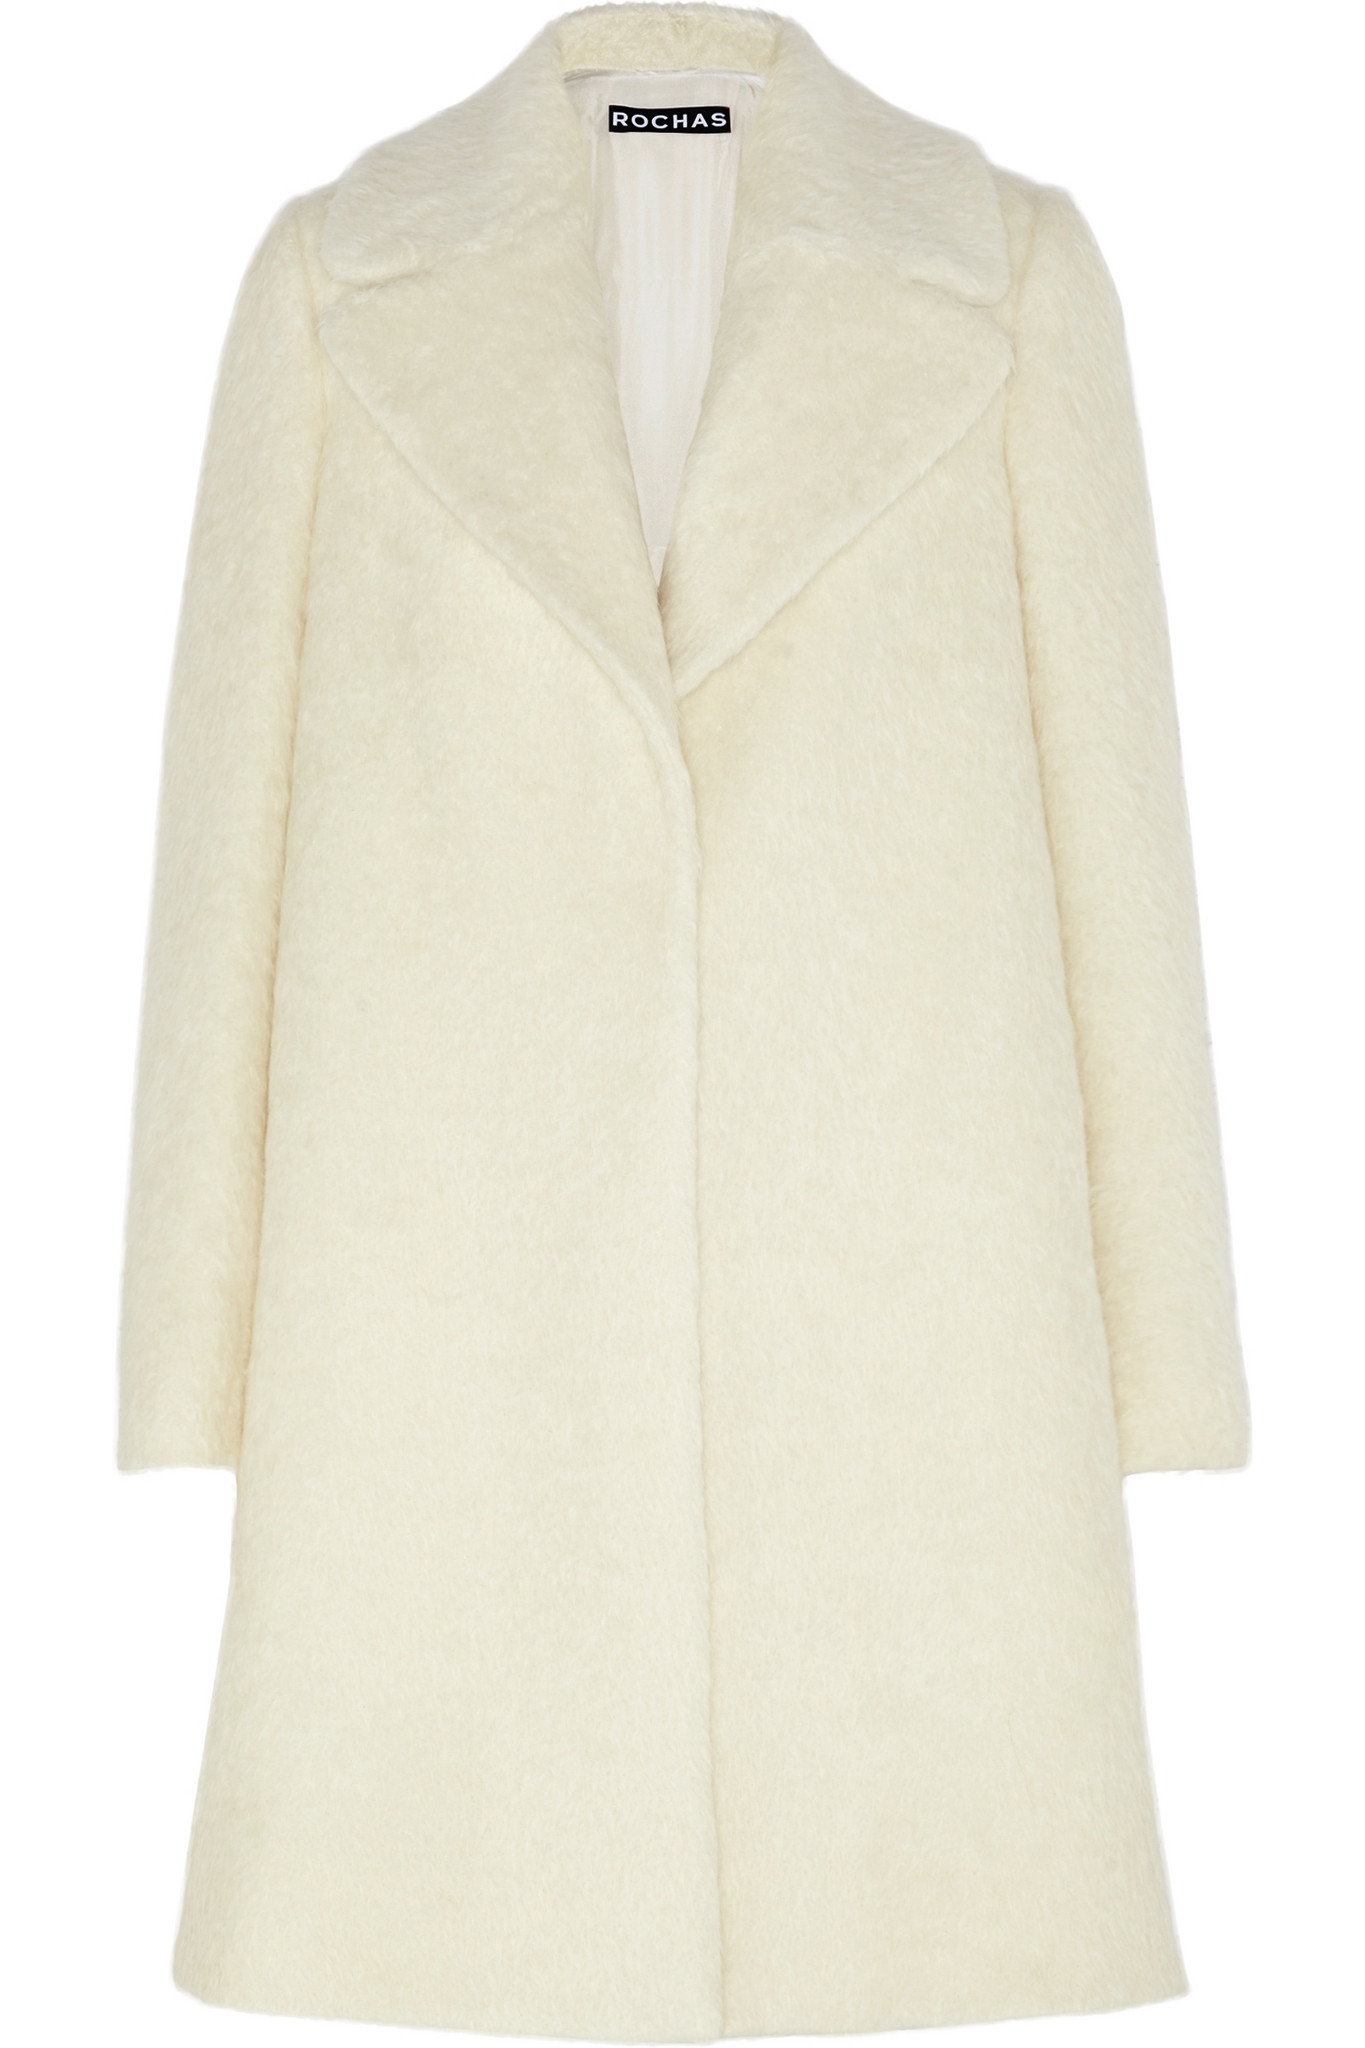 Shop metrostyle for our Wool Blend Coat. Browse our online catalog for more unique & bold clothing, shoes & accessories to complete your look.